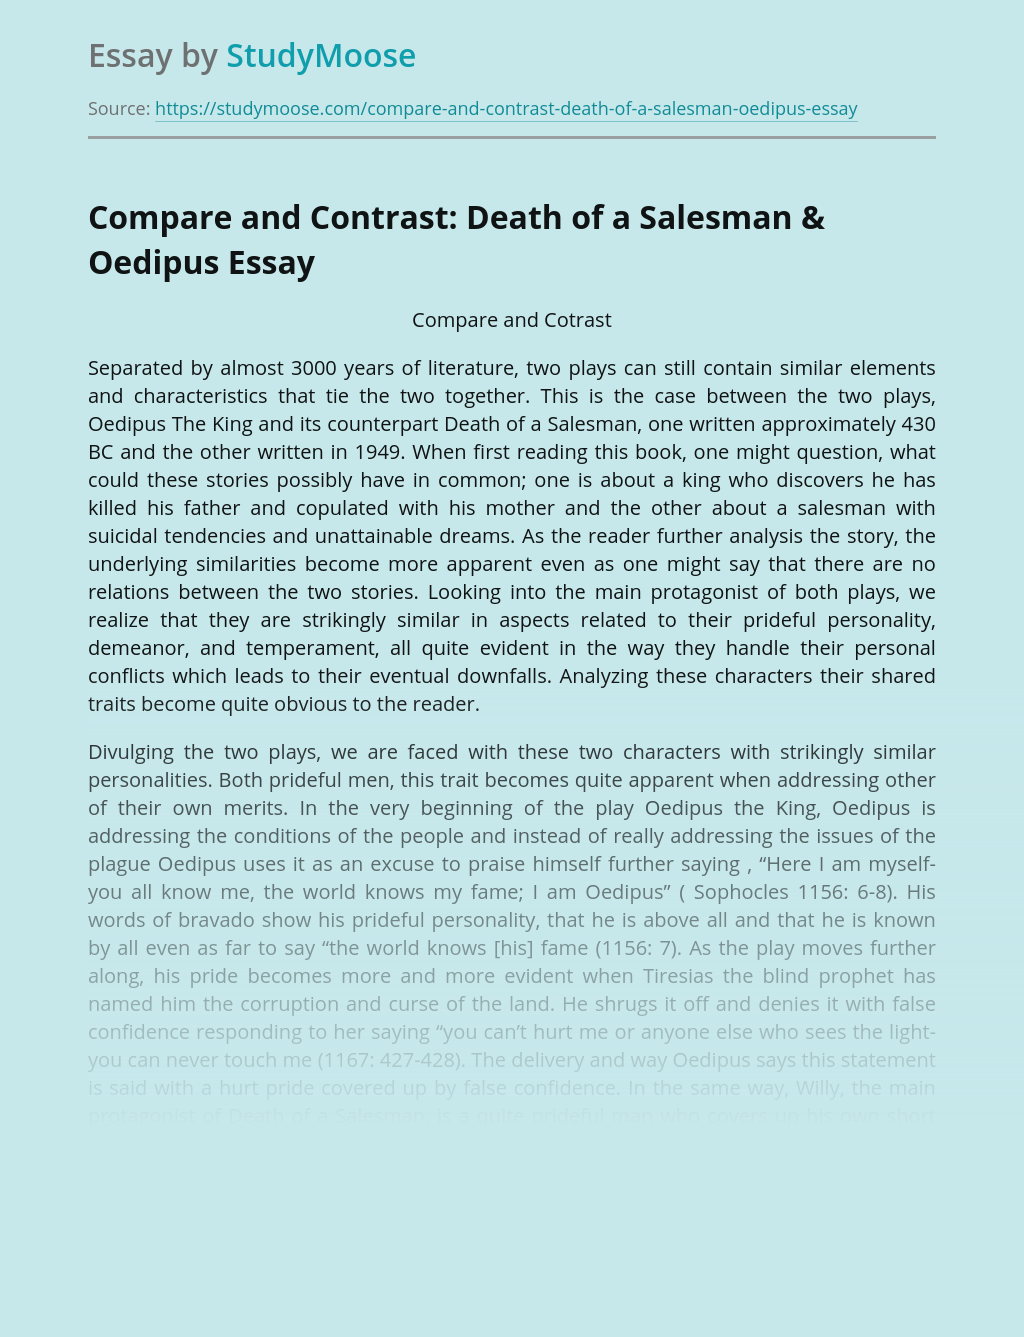 Compare and Contrast: Death of a Salesman & Oedipus